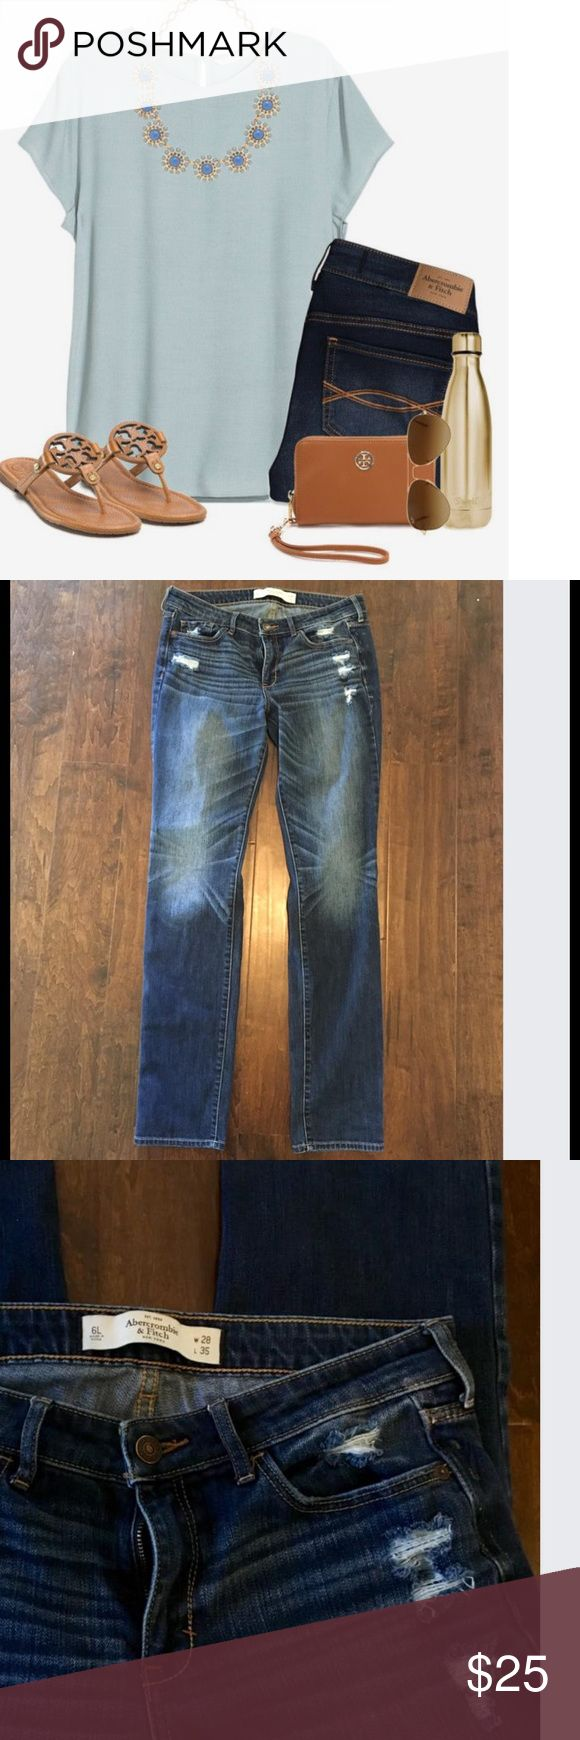 Abercrombie jeans size 6 Abercrombie jeans slight distress look, worn only a couple times. Super cute! Size 6l, I'm 5 ft 8 and the length is perfect. Abercrombie & Fitch Jeans Straight Leg